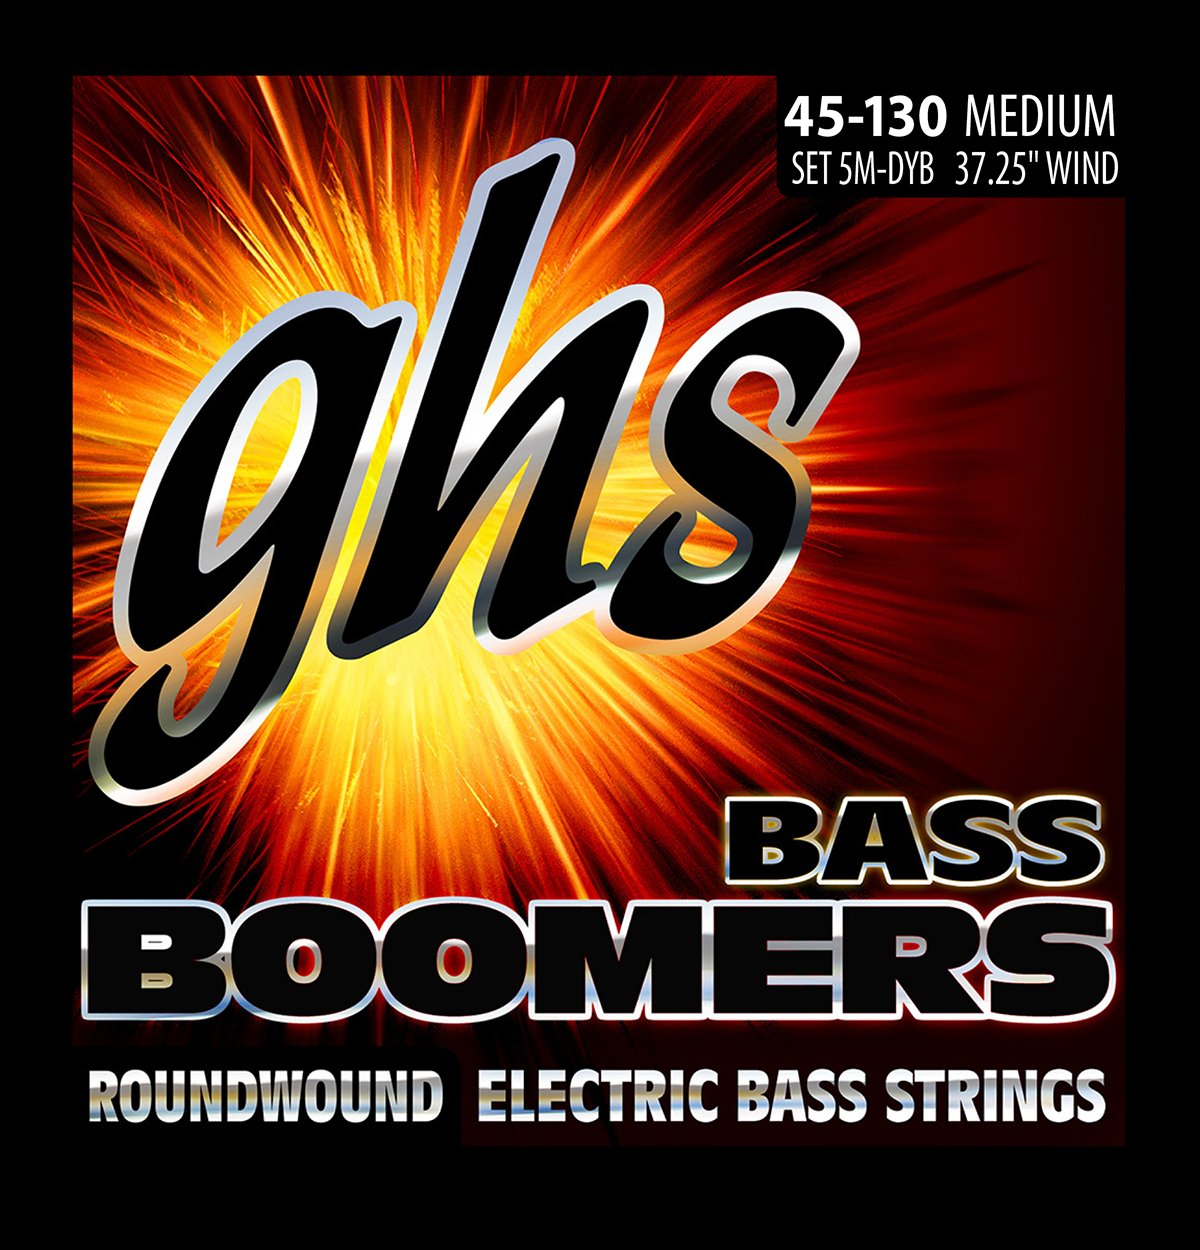 GHS Strings 5M-DYB 5-String Bass Boomers, Nickel-Plated Electric Bass Strings, Long Scale, Medium (.045-.130) GHS Corporation